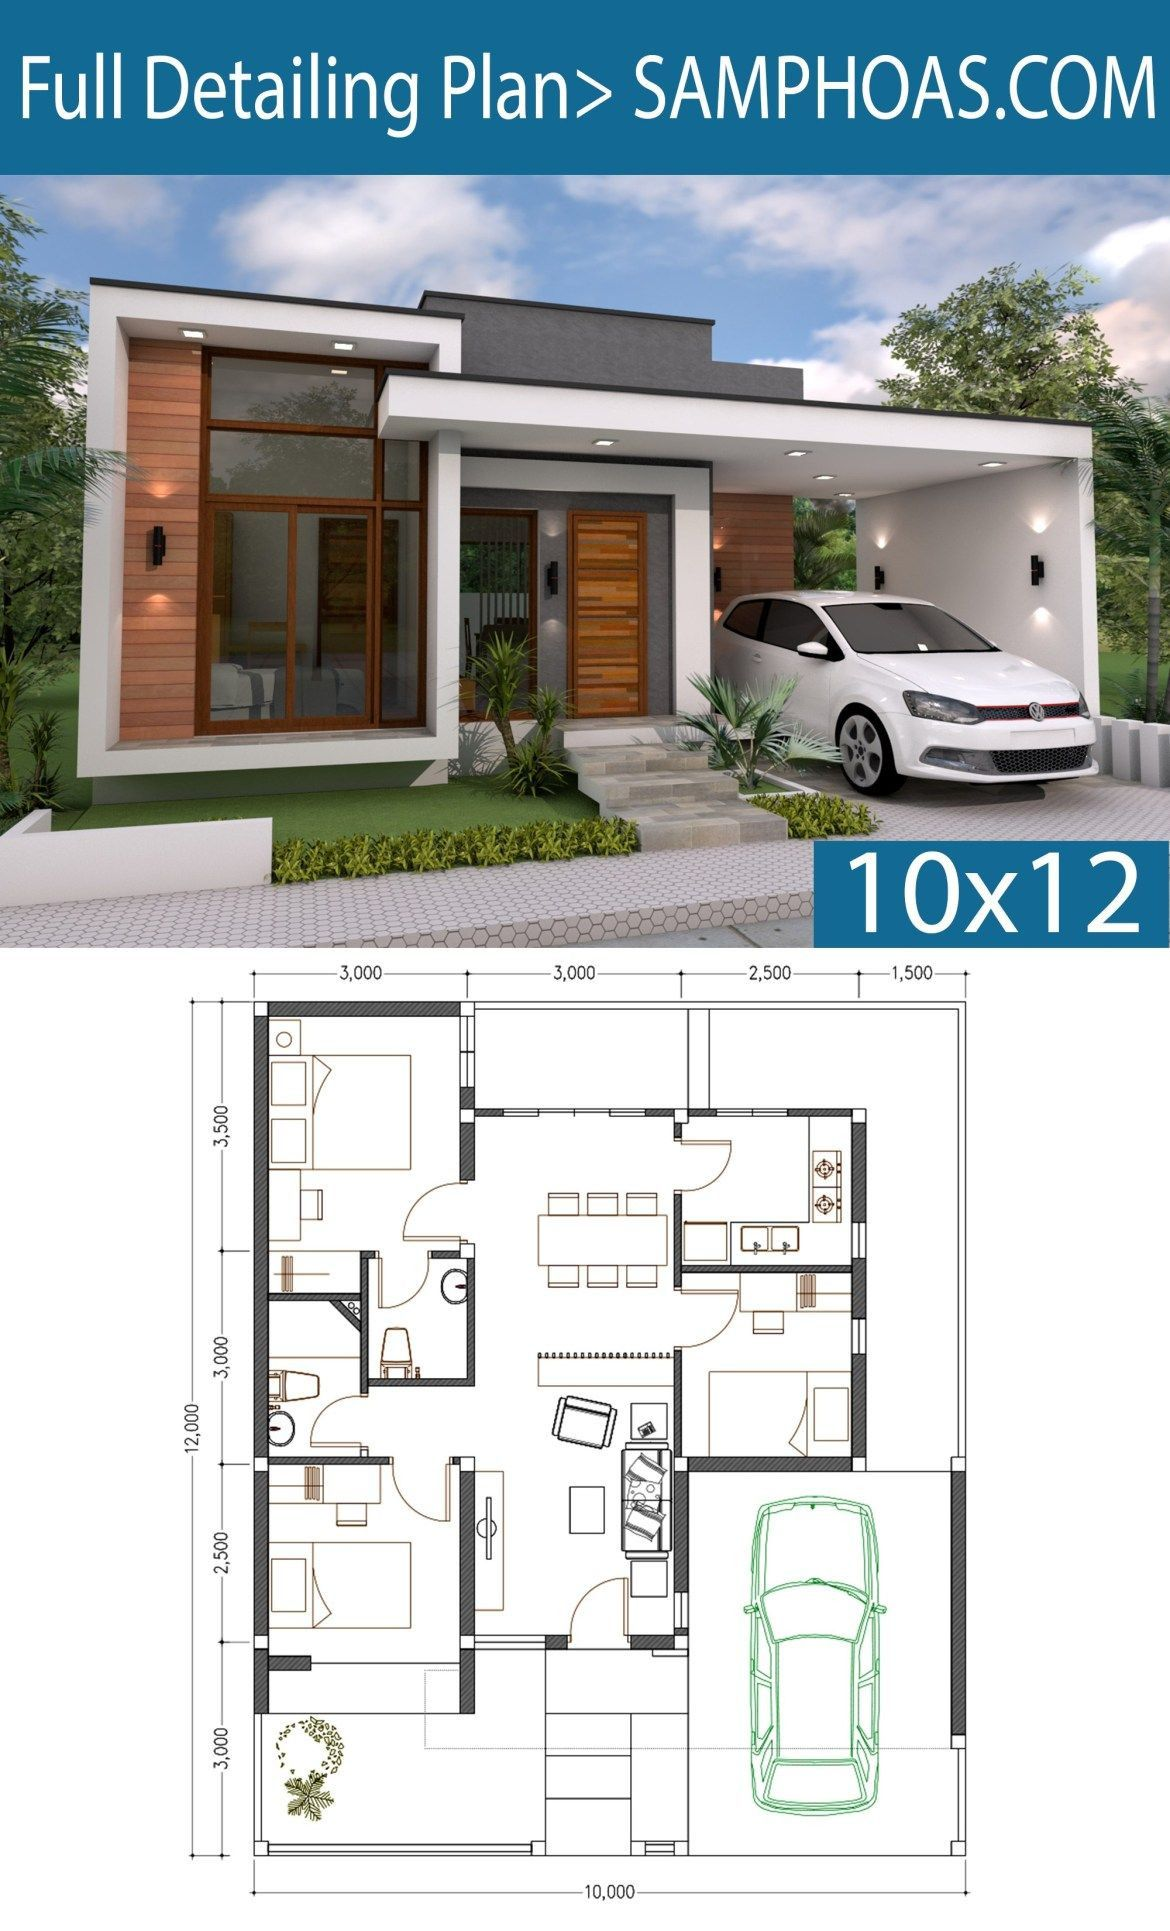 Luxury Three Bedroom Low Budget Modern 3 Bedroom House Design Modern Style House Plans Bungalow House Plans Modern Bungalow House